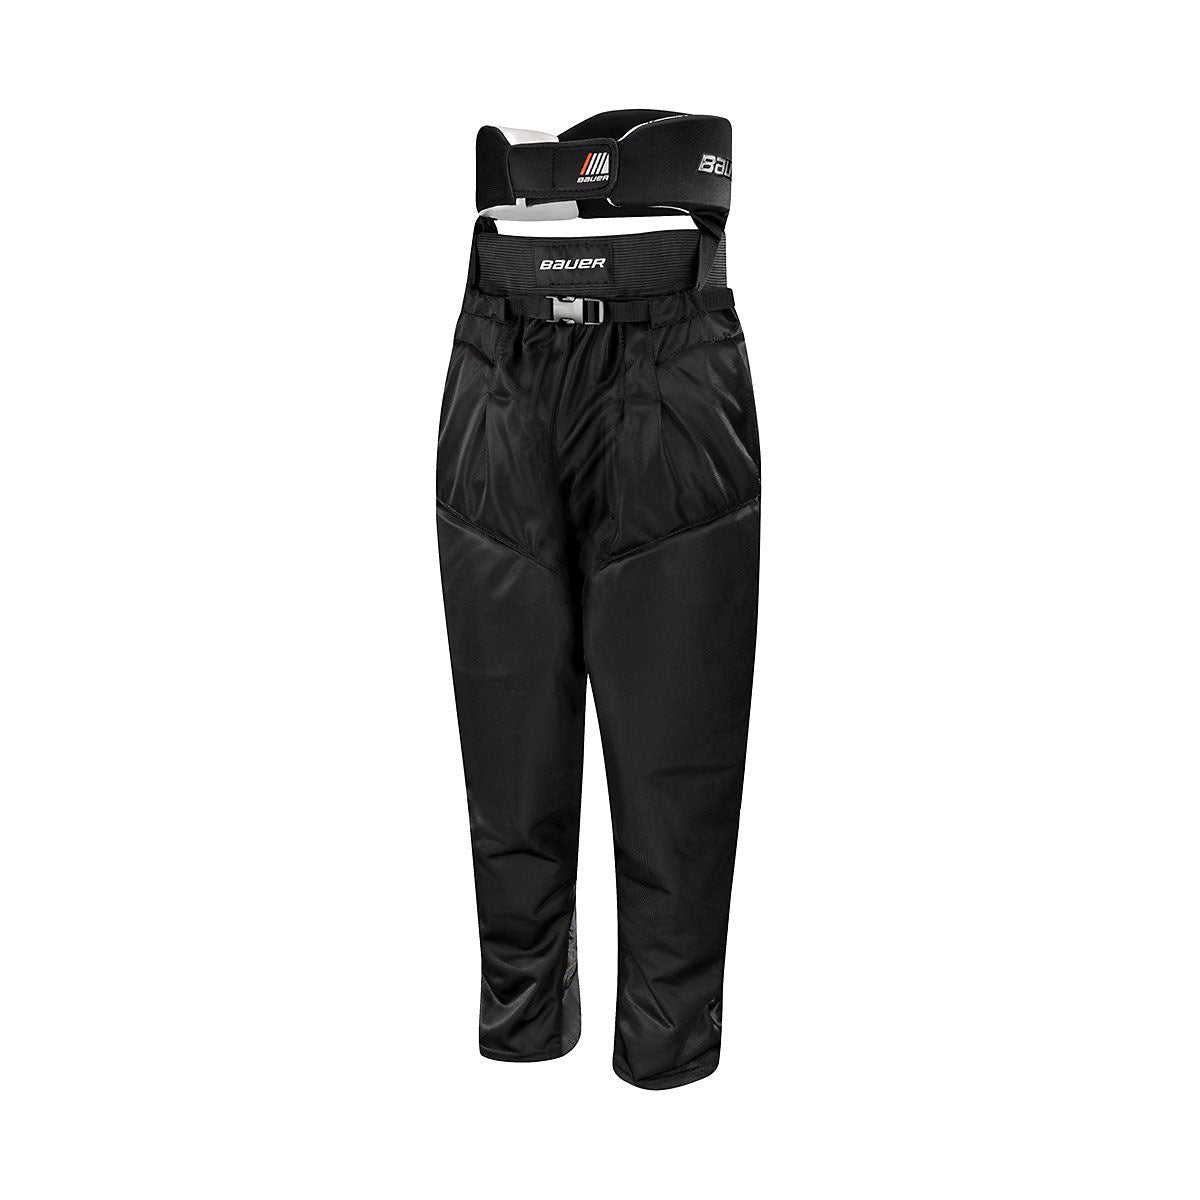 Bauer Hockey Referee Pant with Integrated Girdle